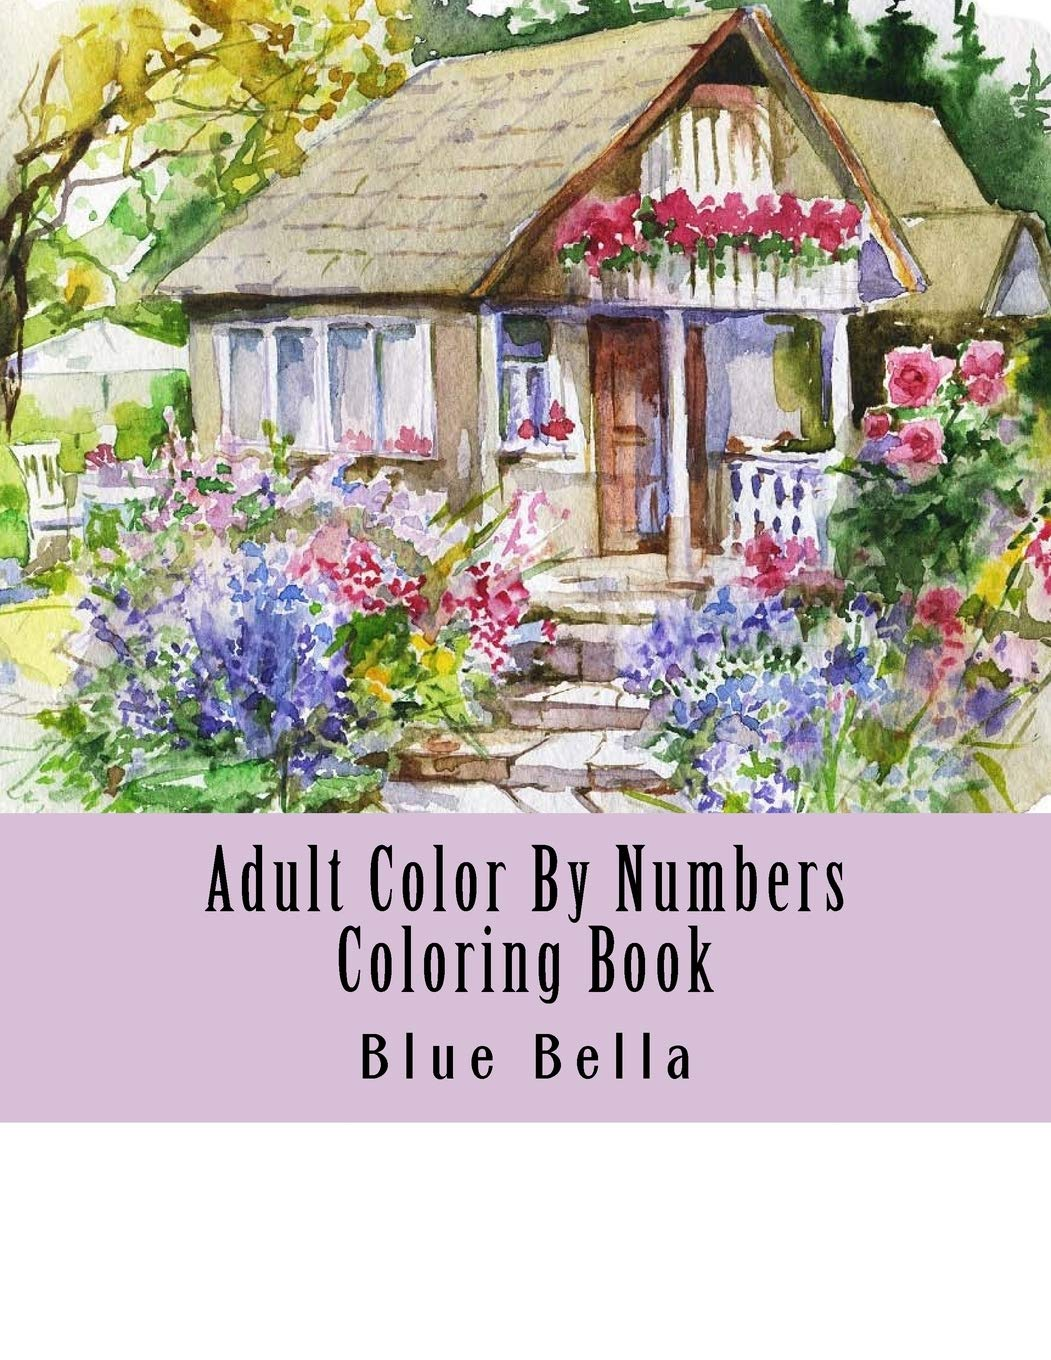 Adult Color By Numbers Coloring Book: Easy Large Print Mega Jumbo Coloring Book of Floral, Flowers, Gardens, Landscapes, Animals, Butterflies and More … Relief (Adult Coloring By Numbers Books)